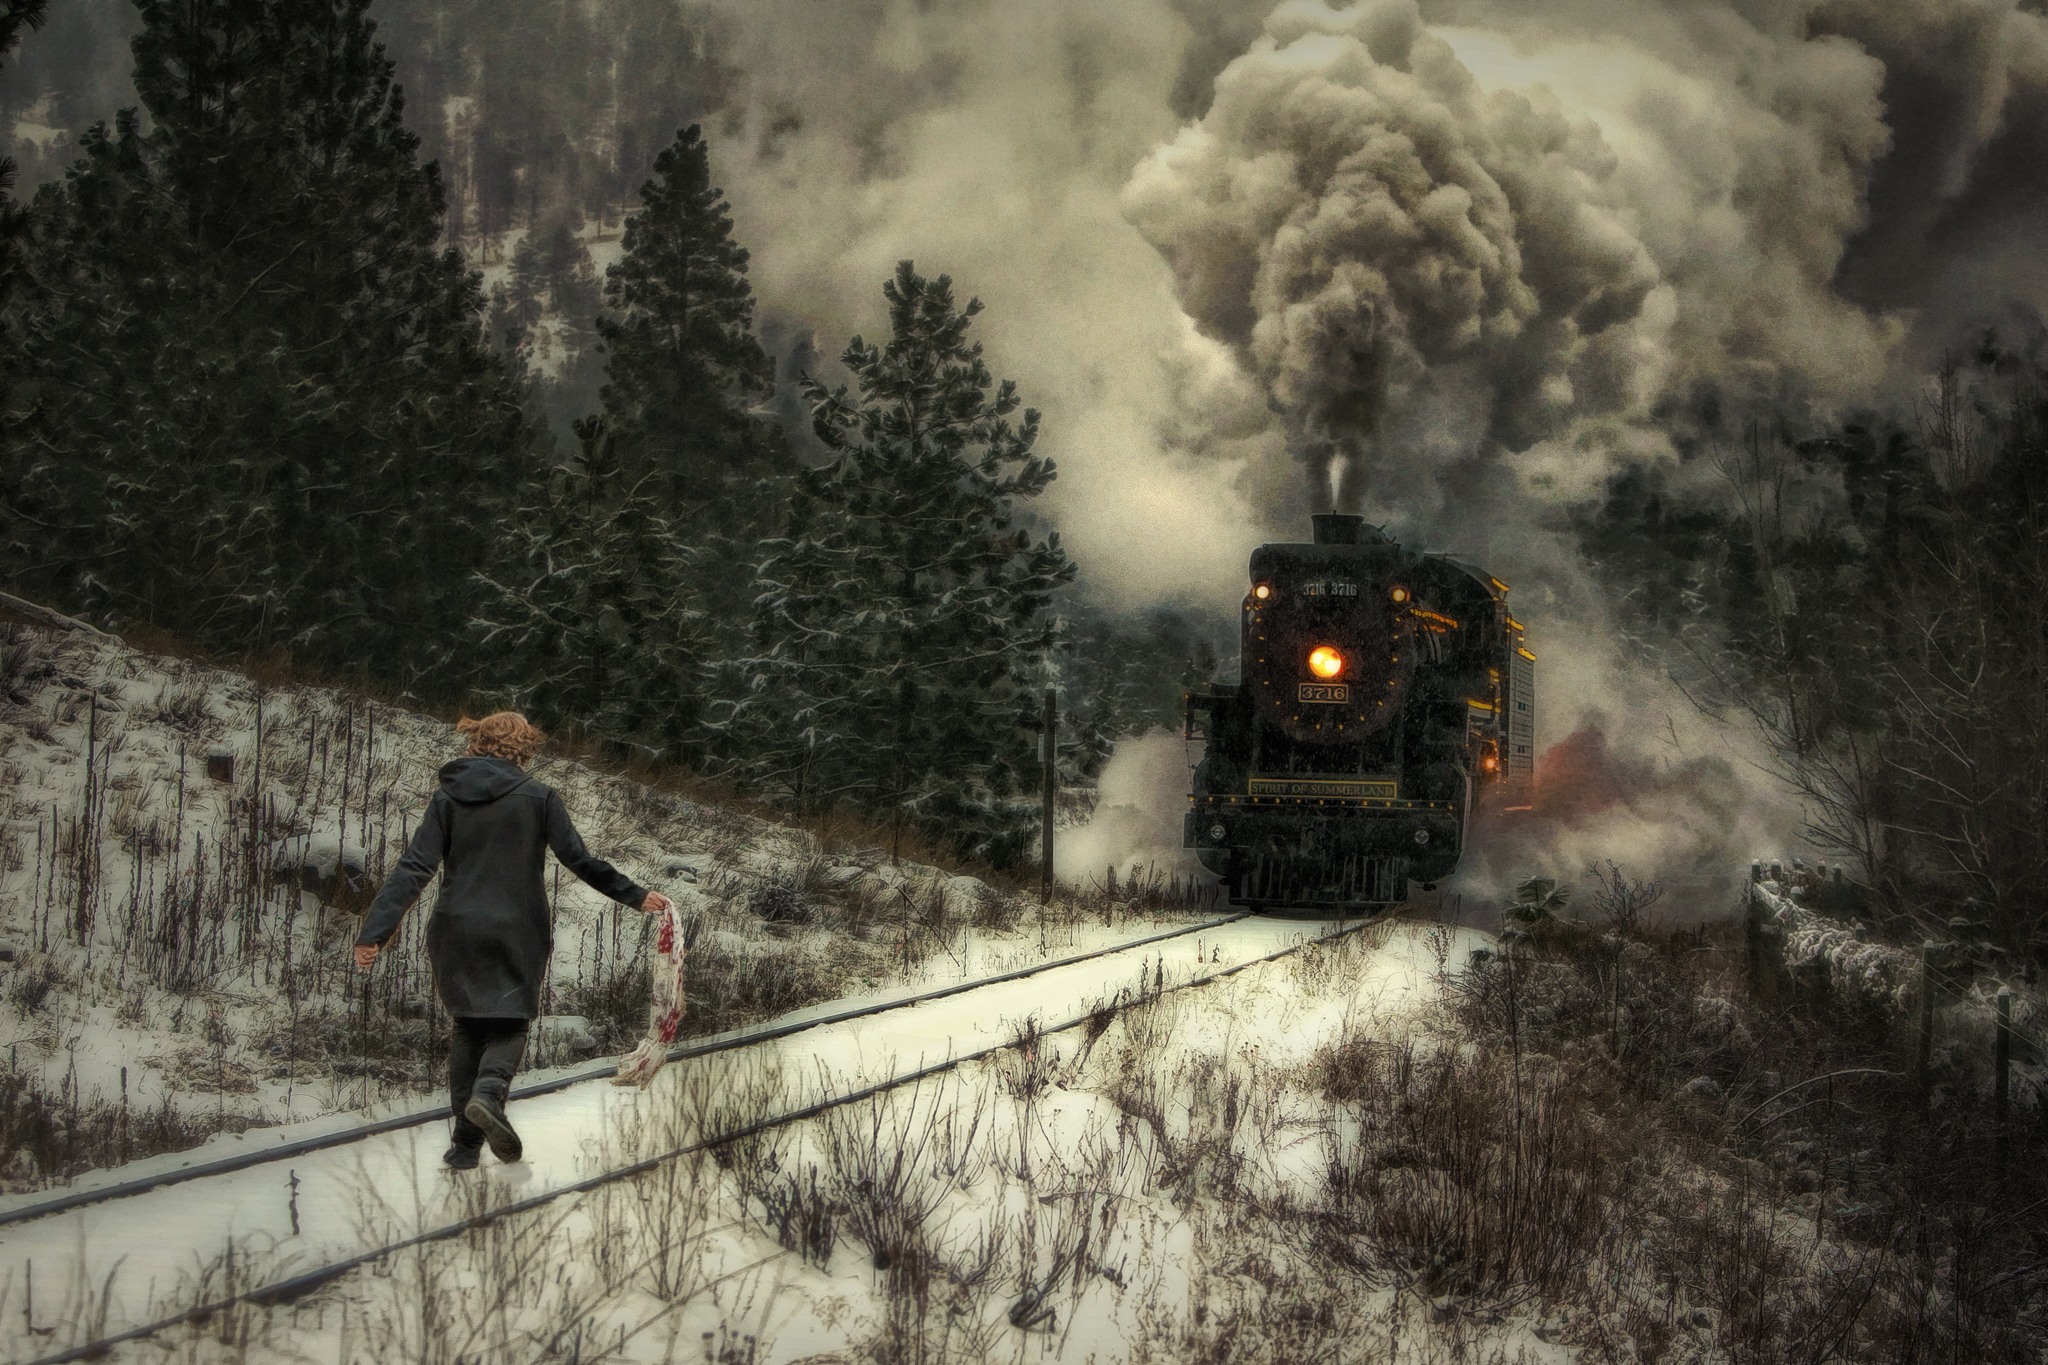 Girl on The Tracks, a composite photo that tells a very personal story of my wifes battle with cancer. She runs head long at the charging locomotive, confronting her disease. Sold